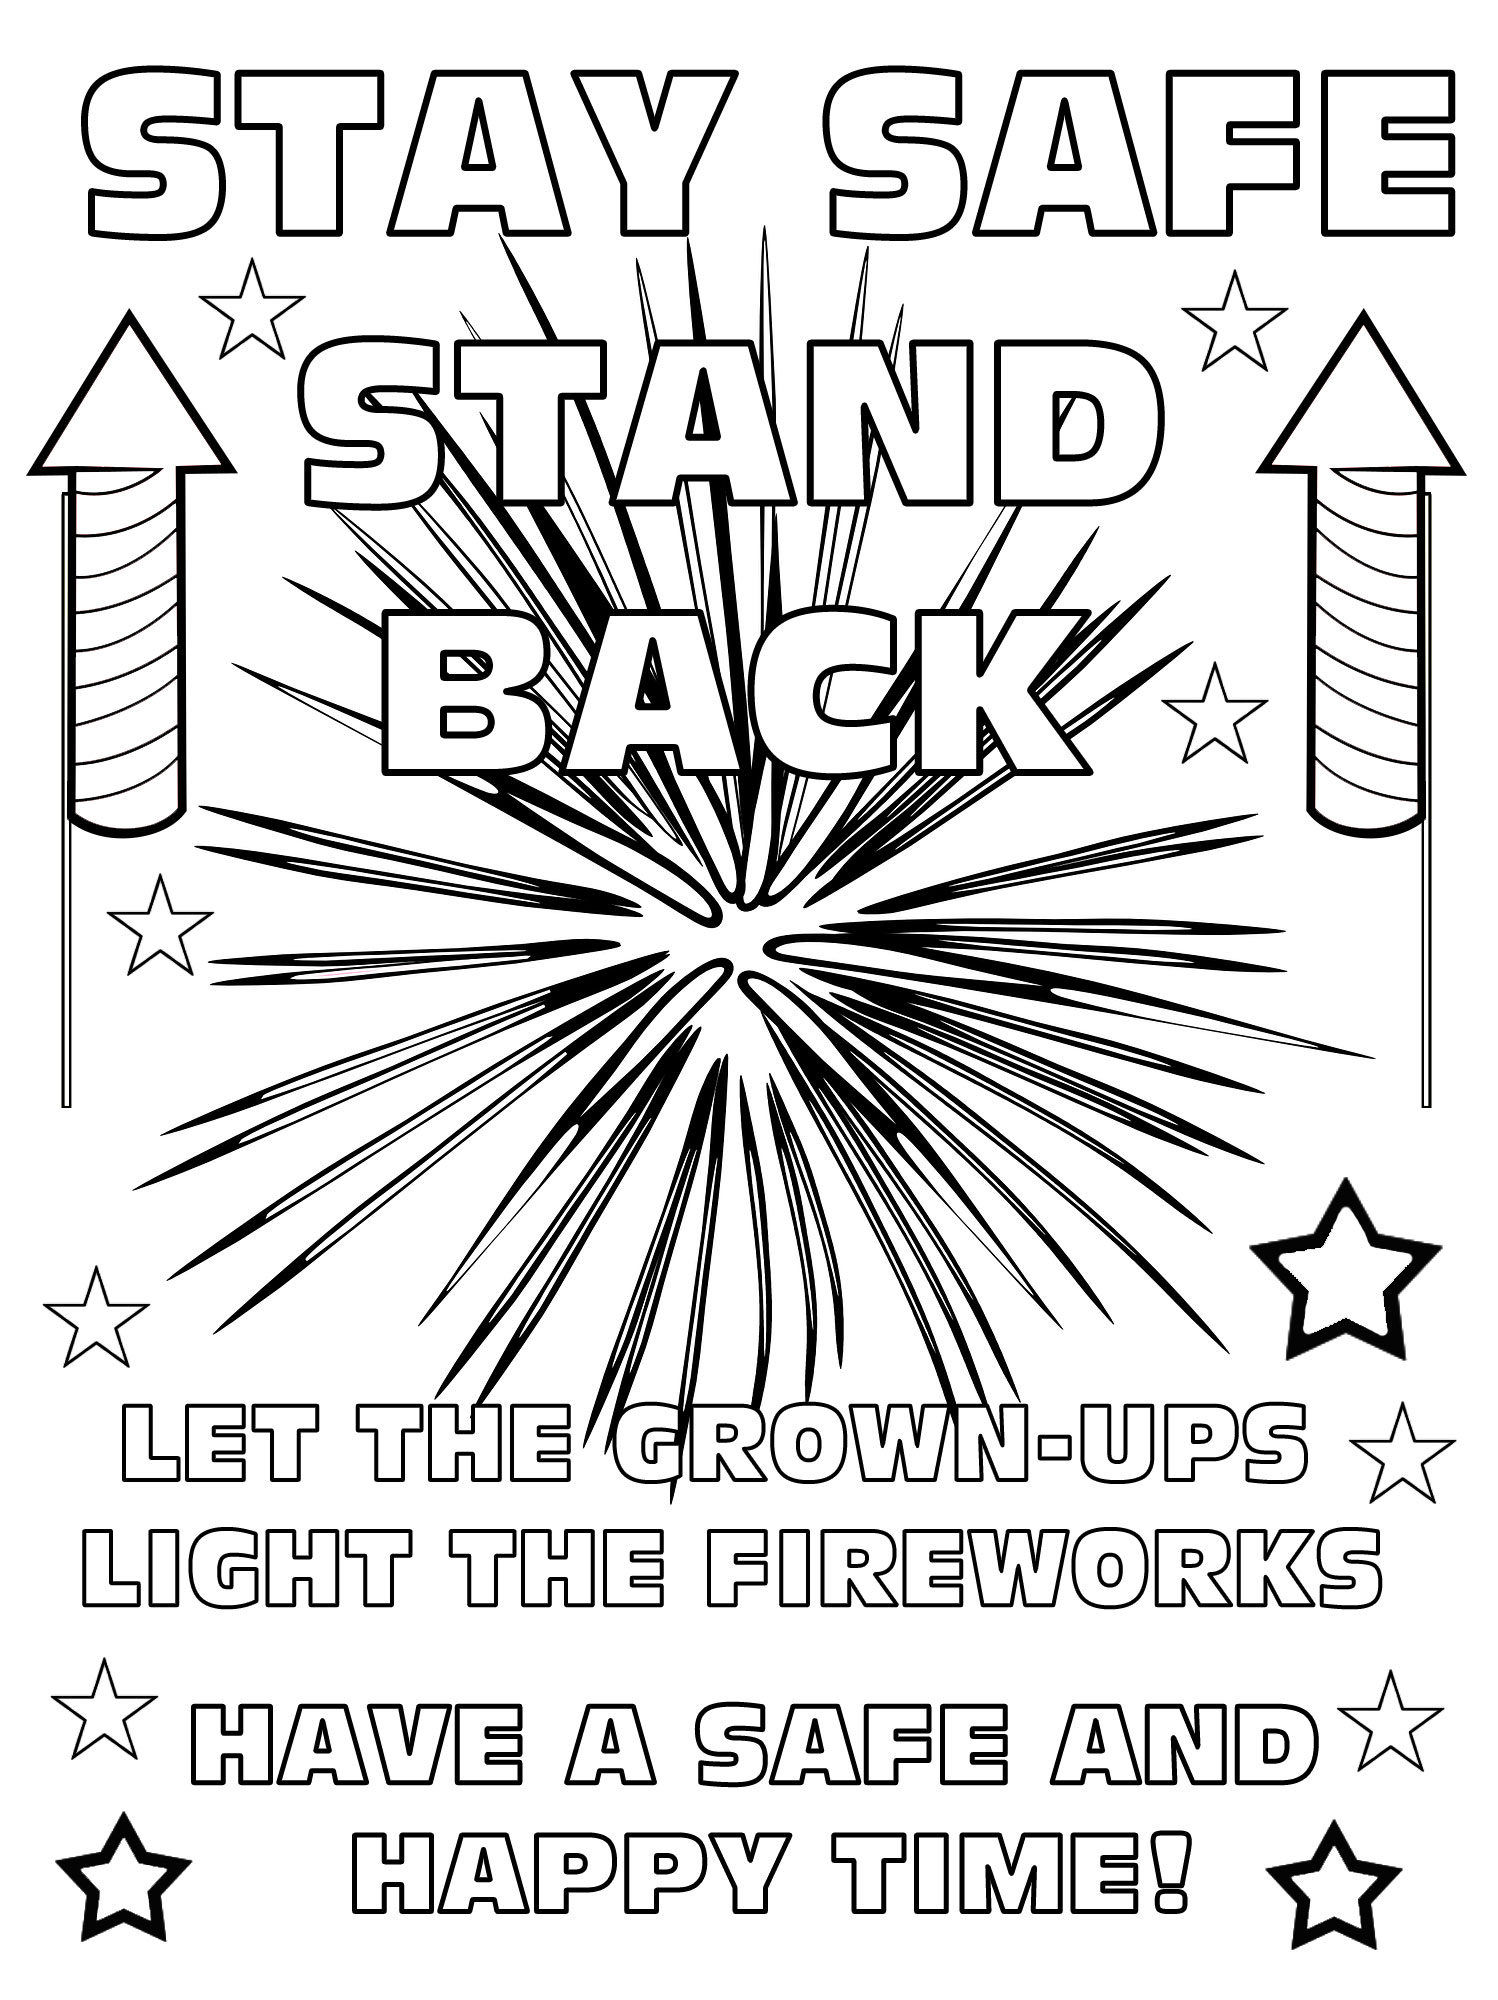 Printable fireworks safety poster for kids to colour in.